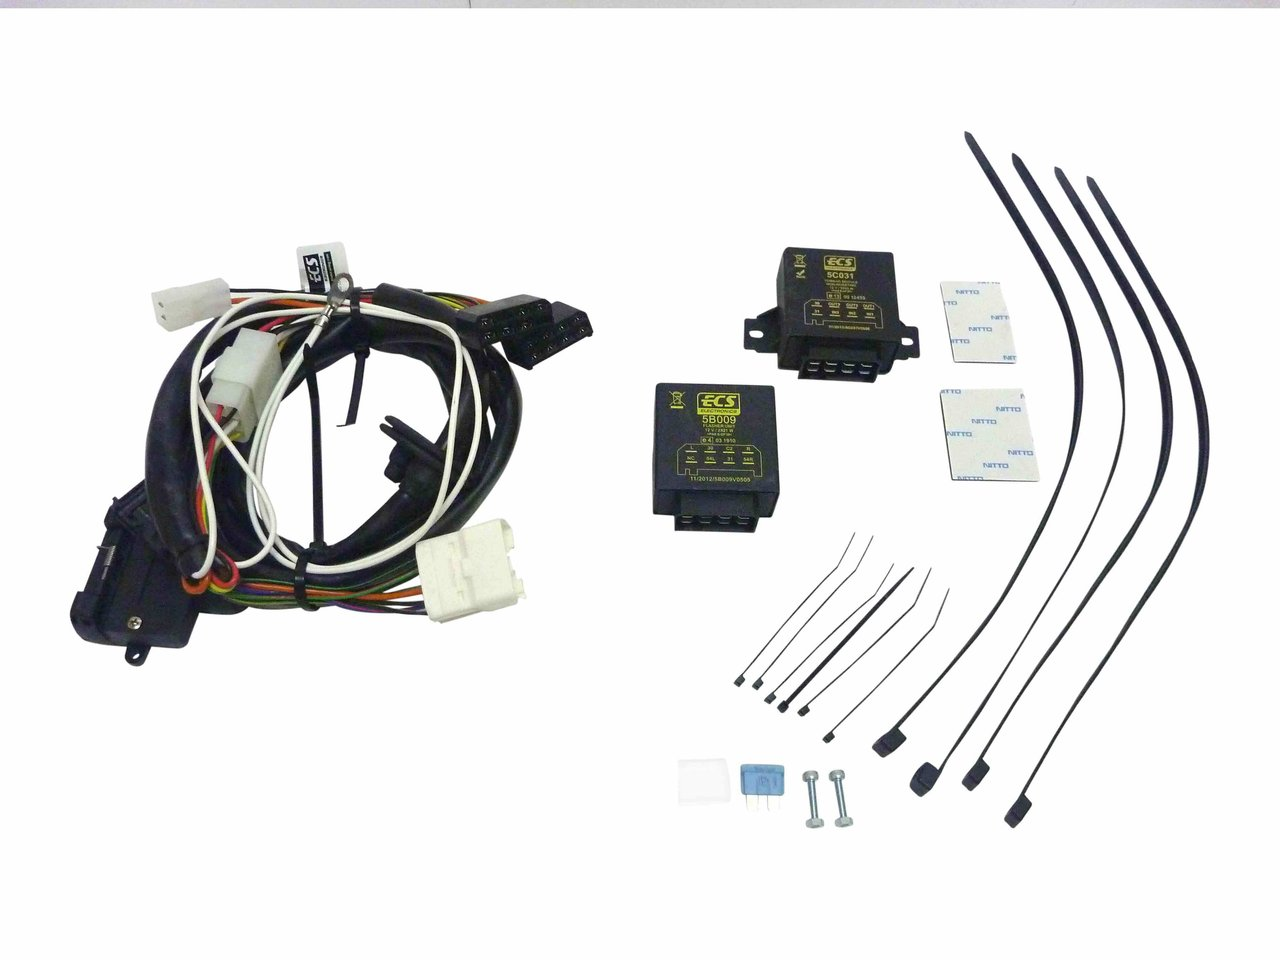 milford towbar wiring harness suitable for toyota prado 150 2009 on